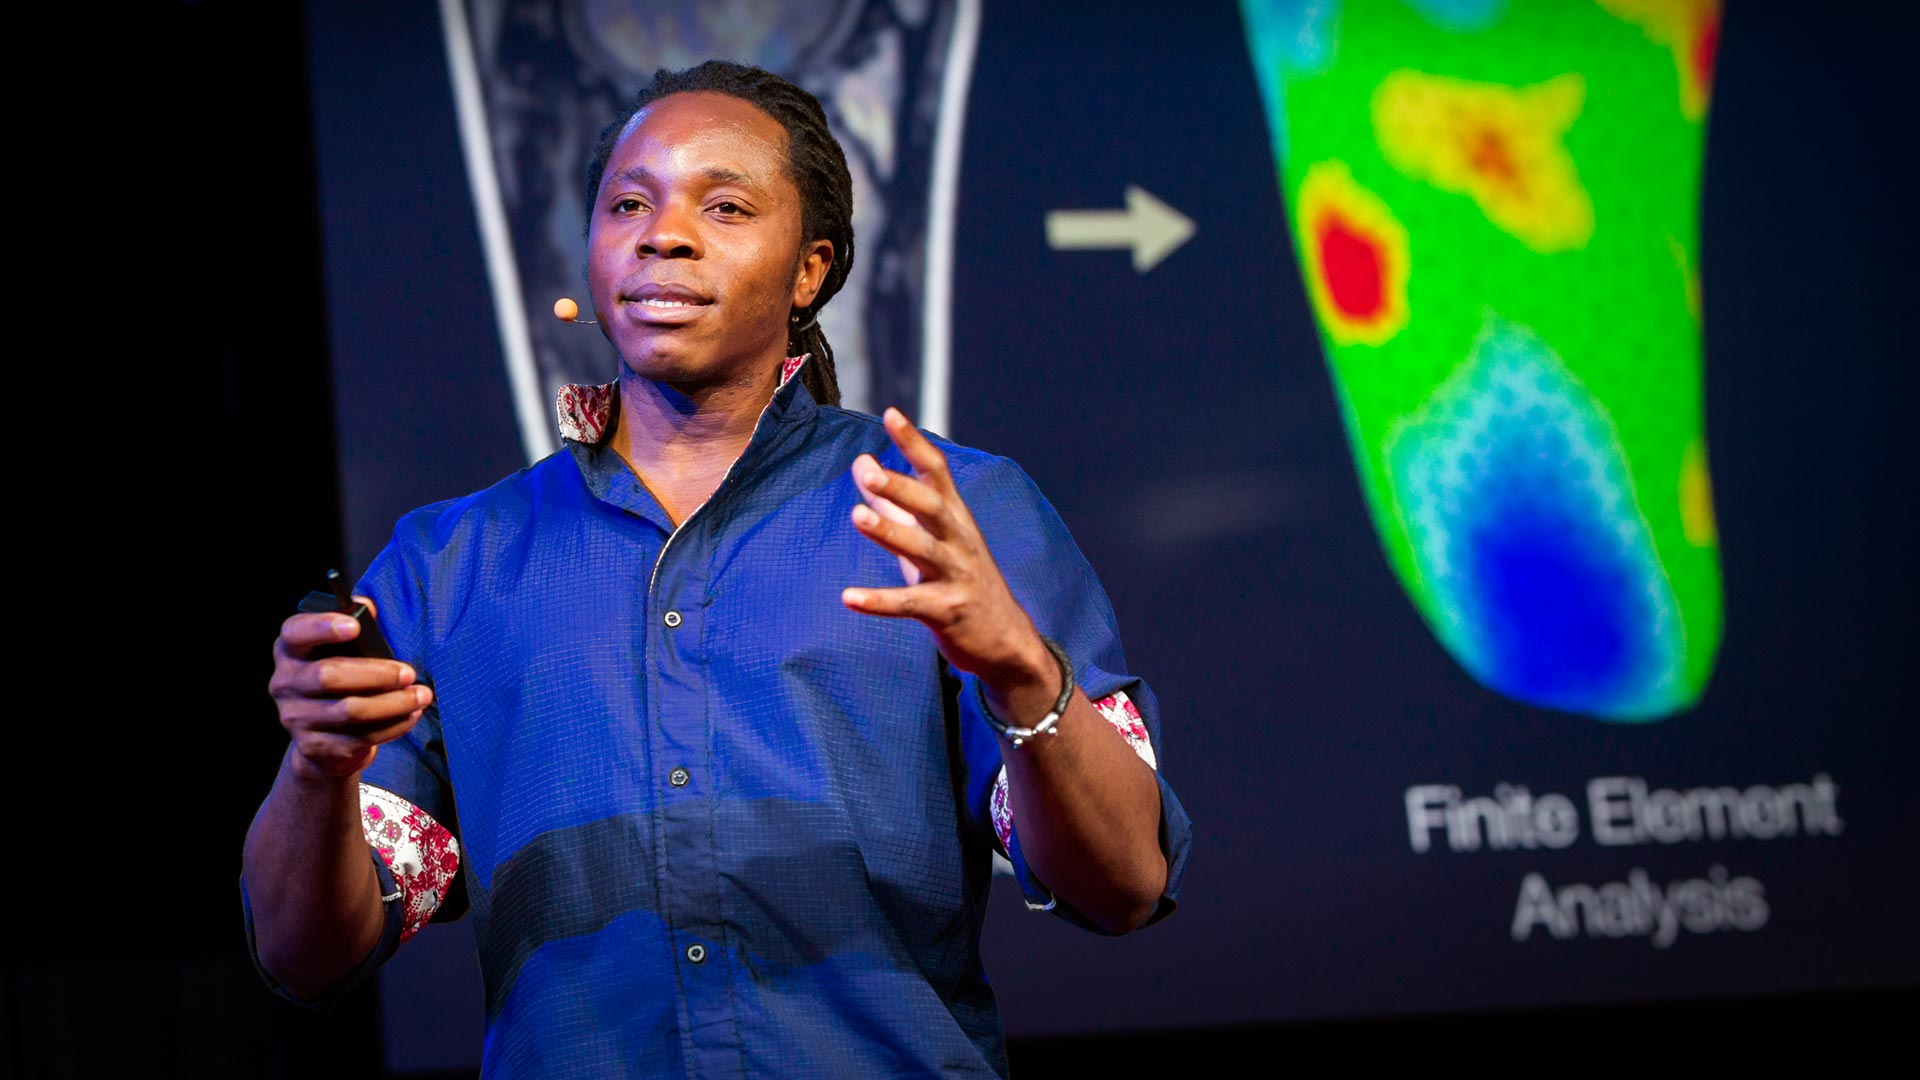 David Sengeh: The sore problem of prosthetic limbs thumbnail